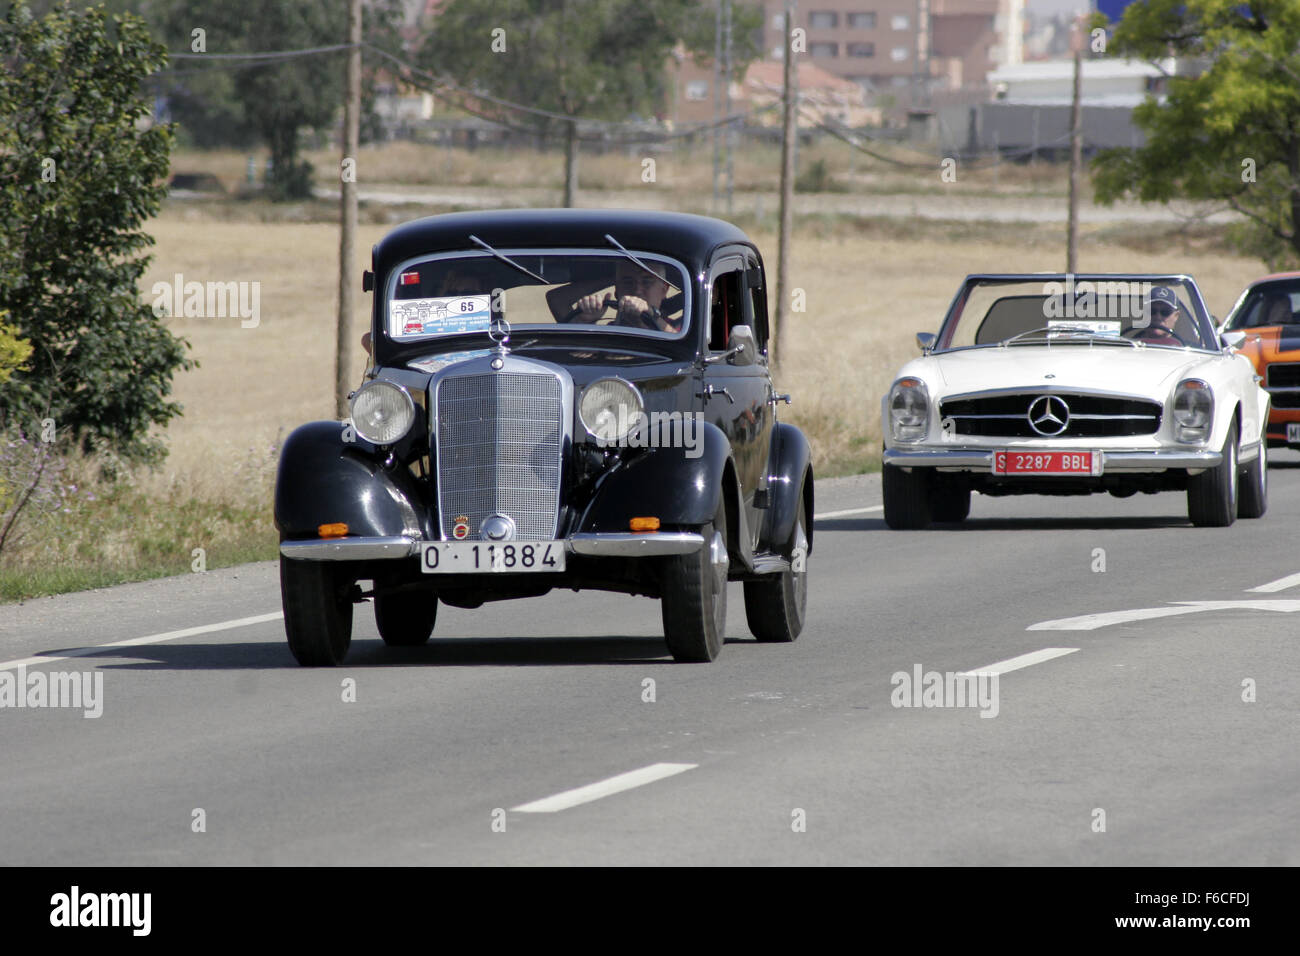 Albacete Circuit : Classical seat 600 car meeting in albacete spain. old mercedes cars